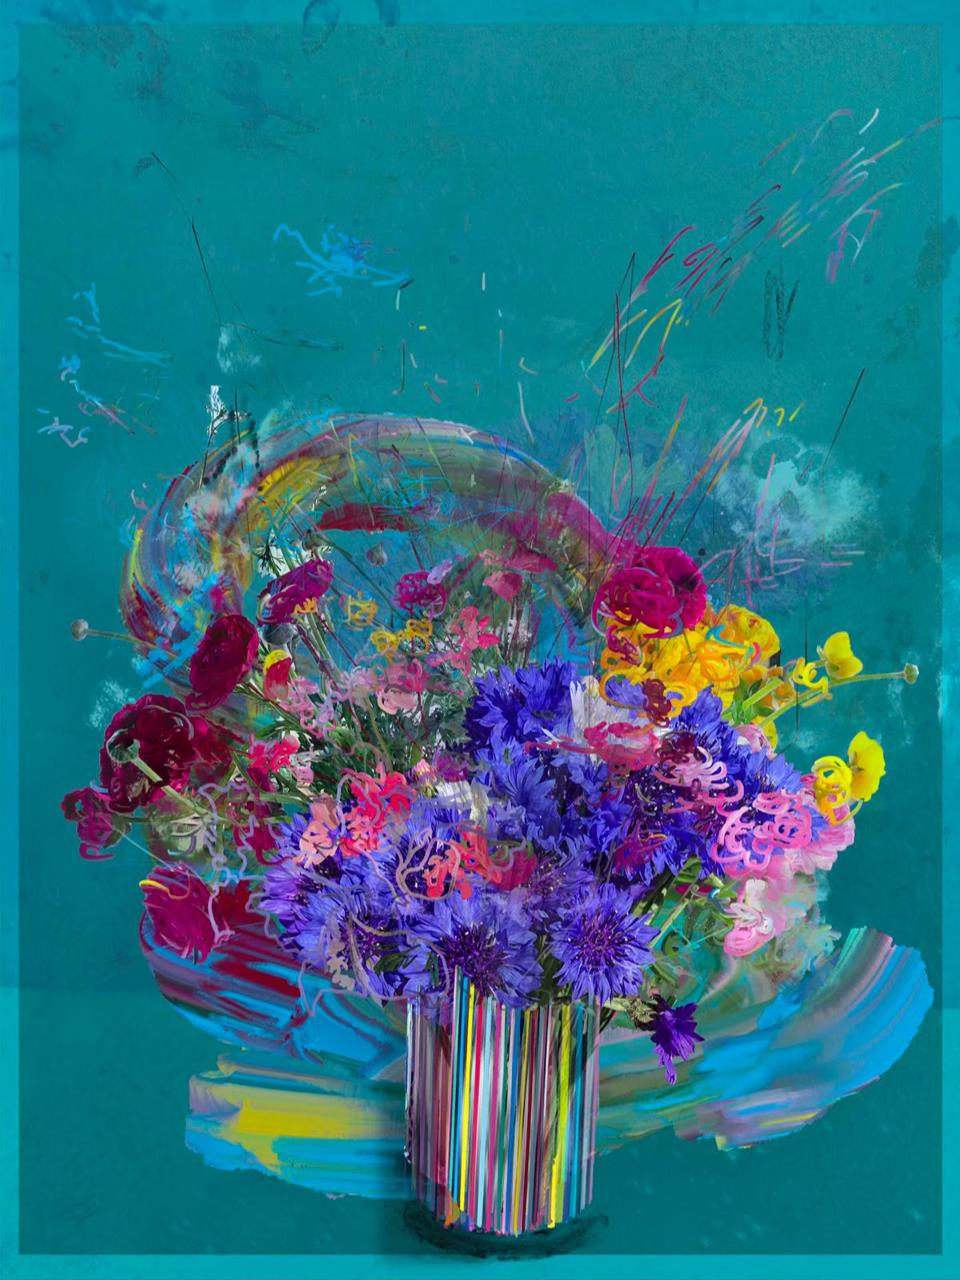 Petra Cortright is a participating artist in 10x10 on SuperRare